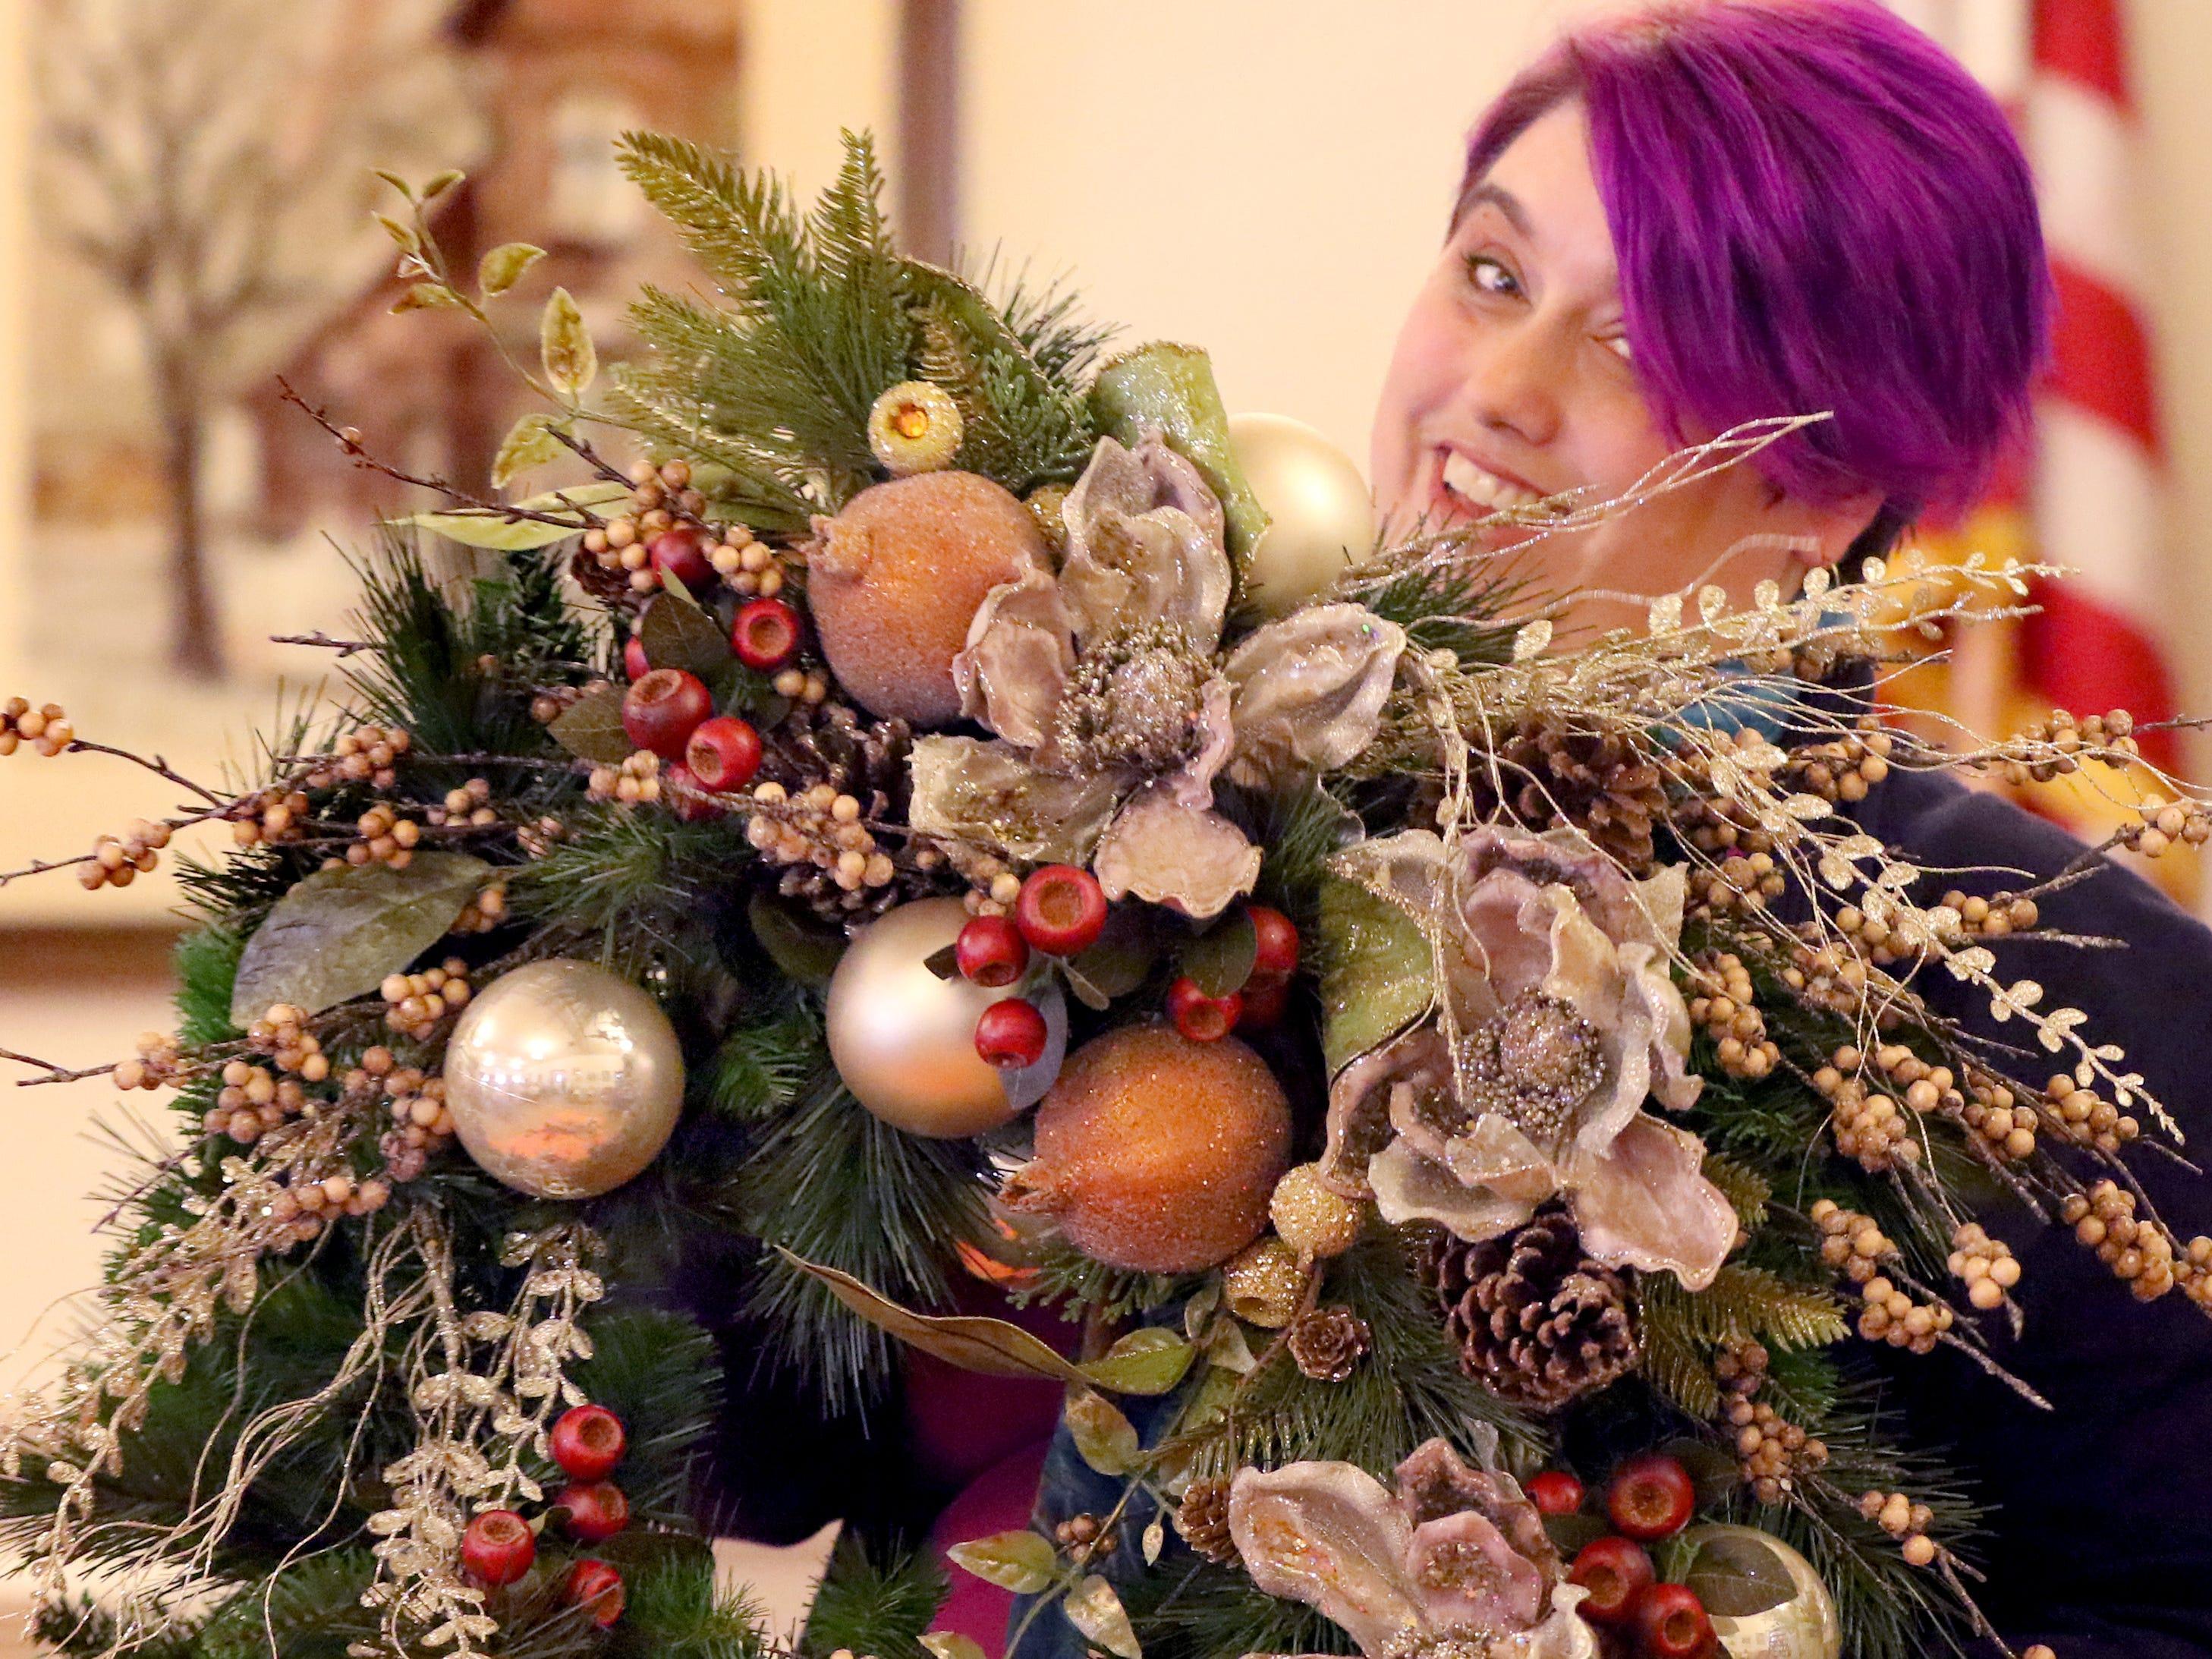 Kimberlee Grob, design manager at Locker's Florist, shows off a wreath she created during a Wauwatosa Woman's Club tea on Nov. 1.